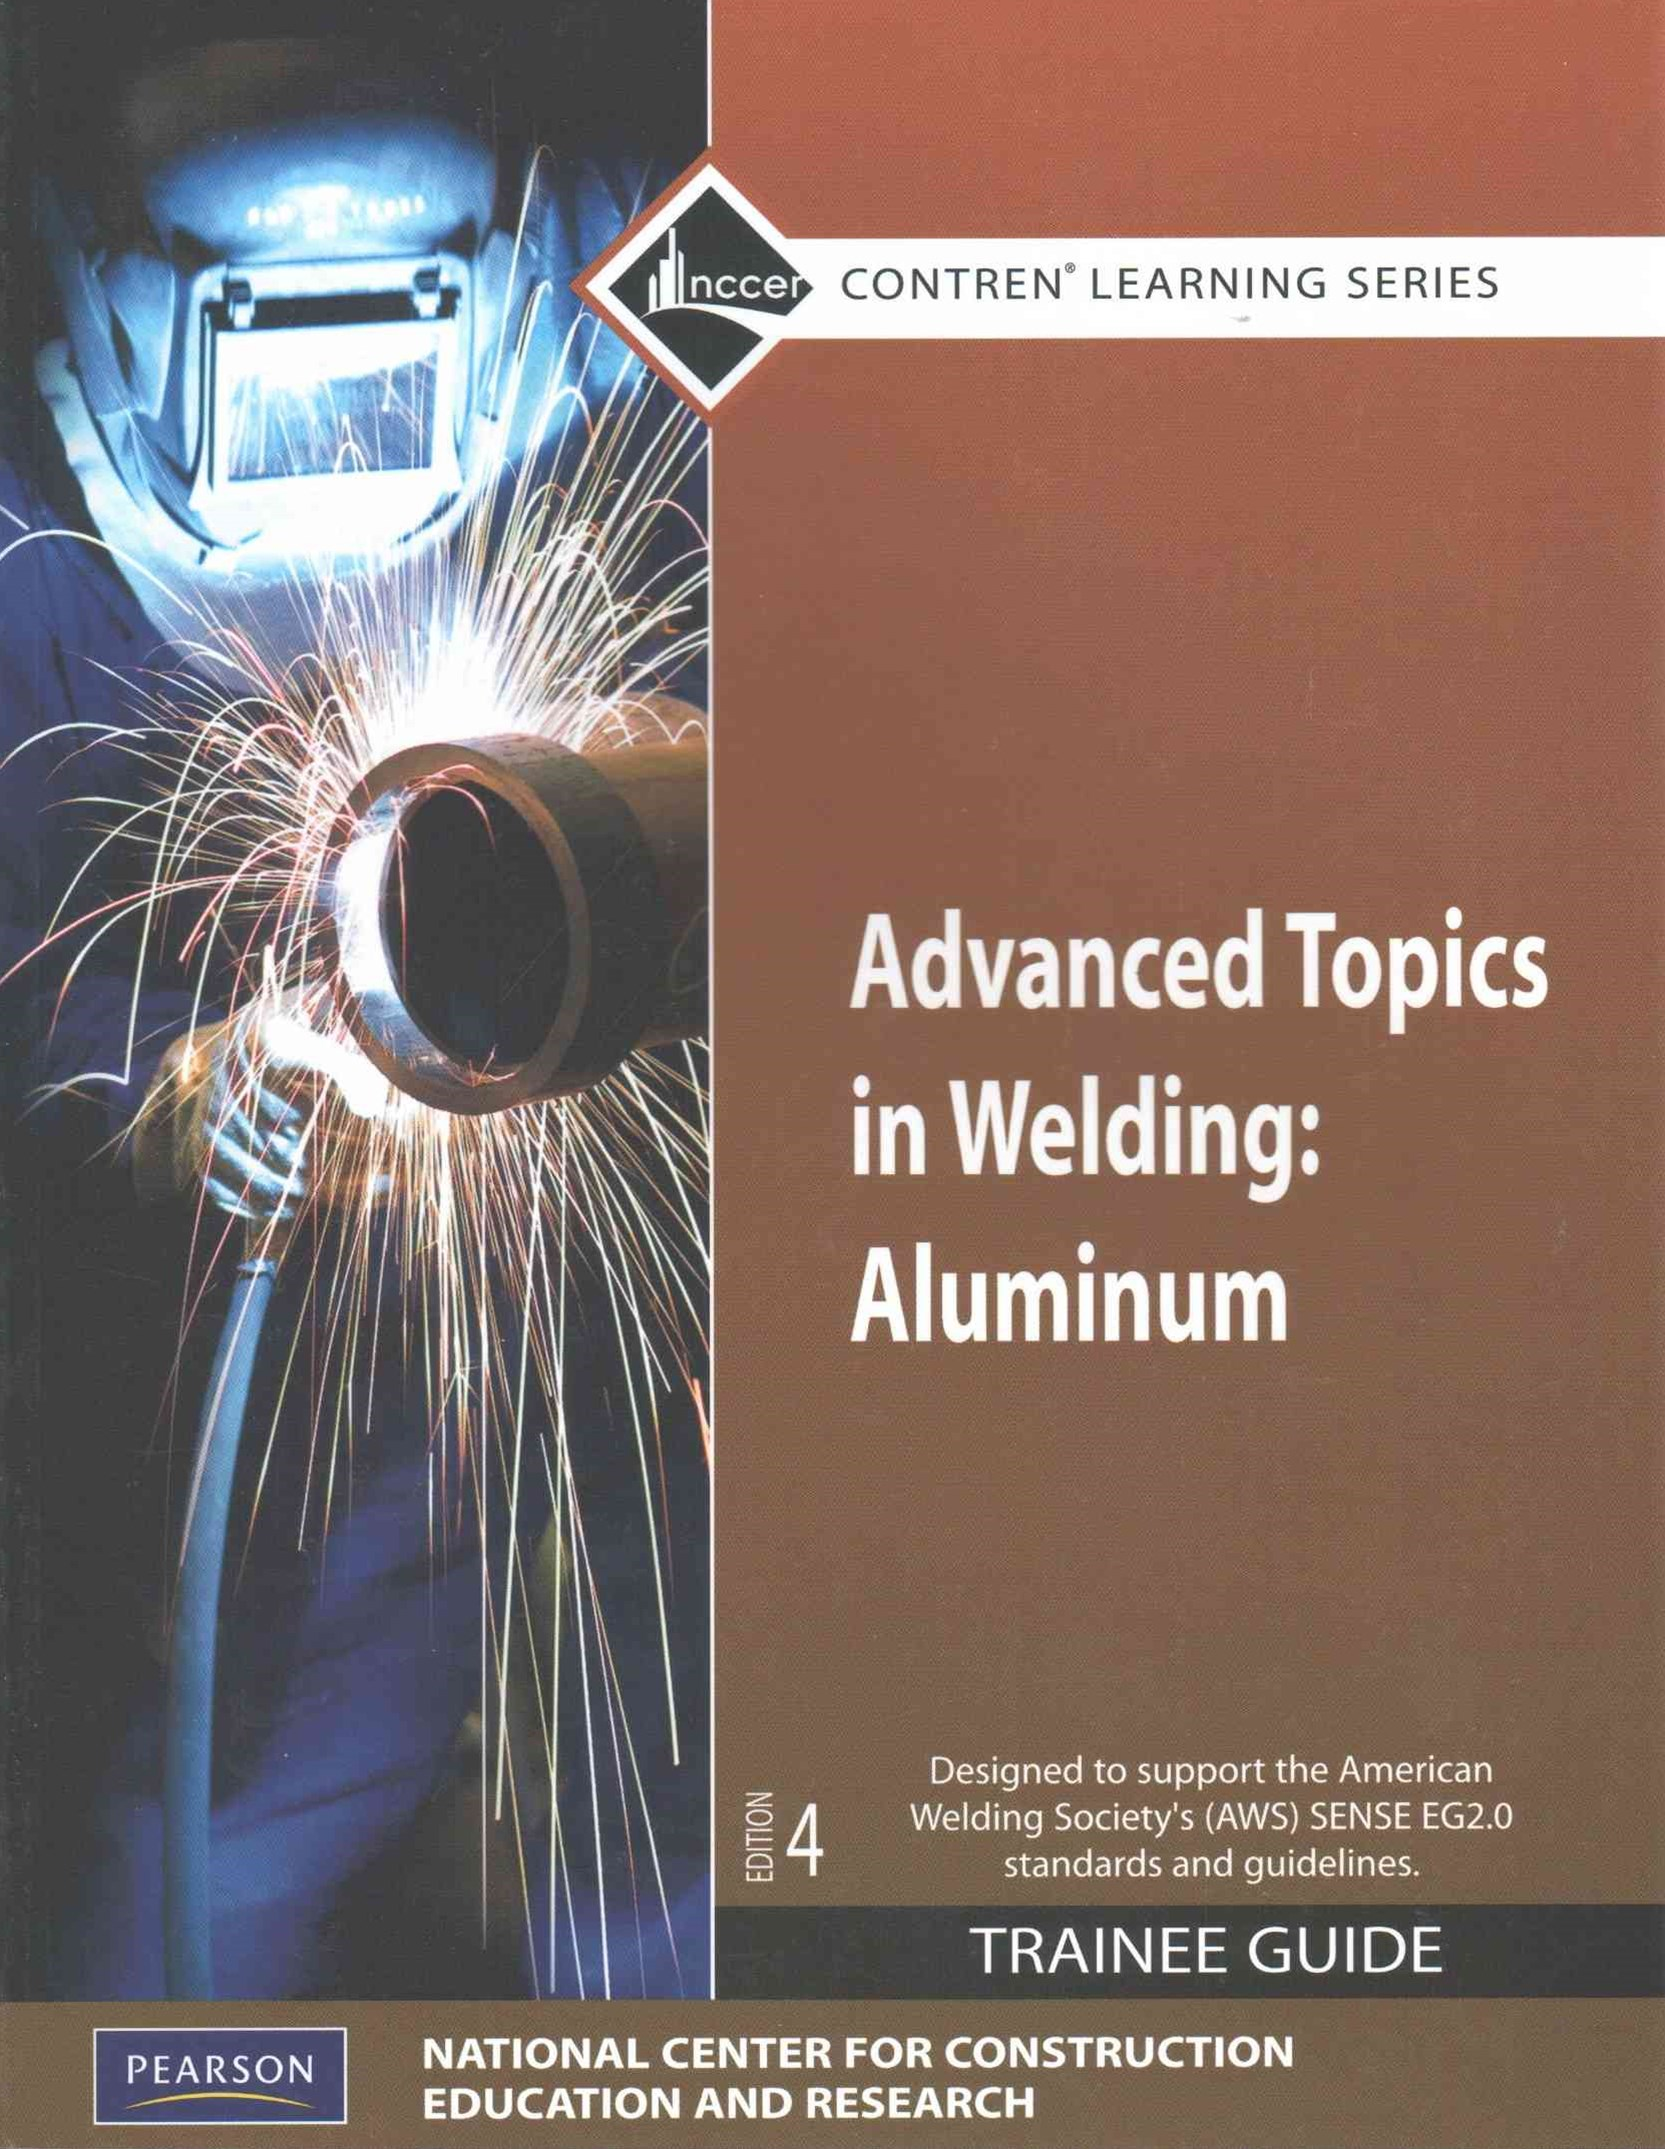 Advanced Topics in Welding